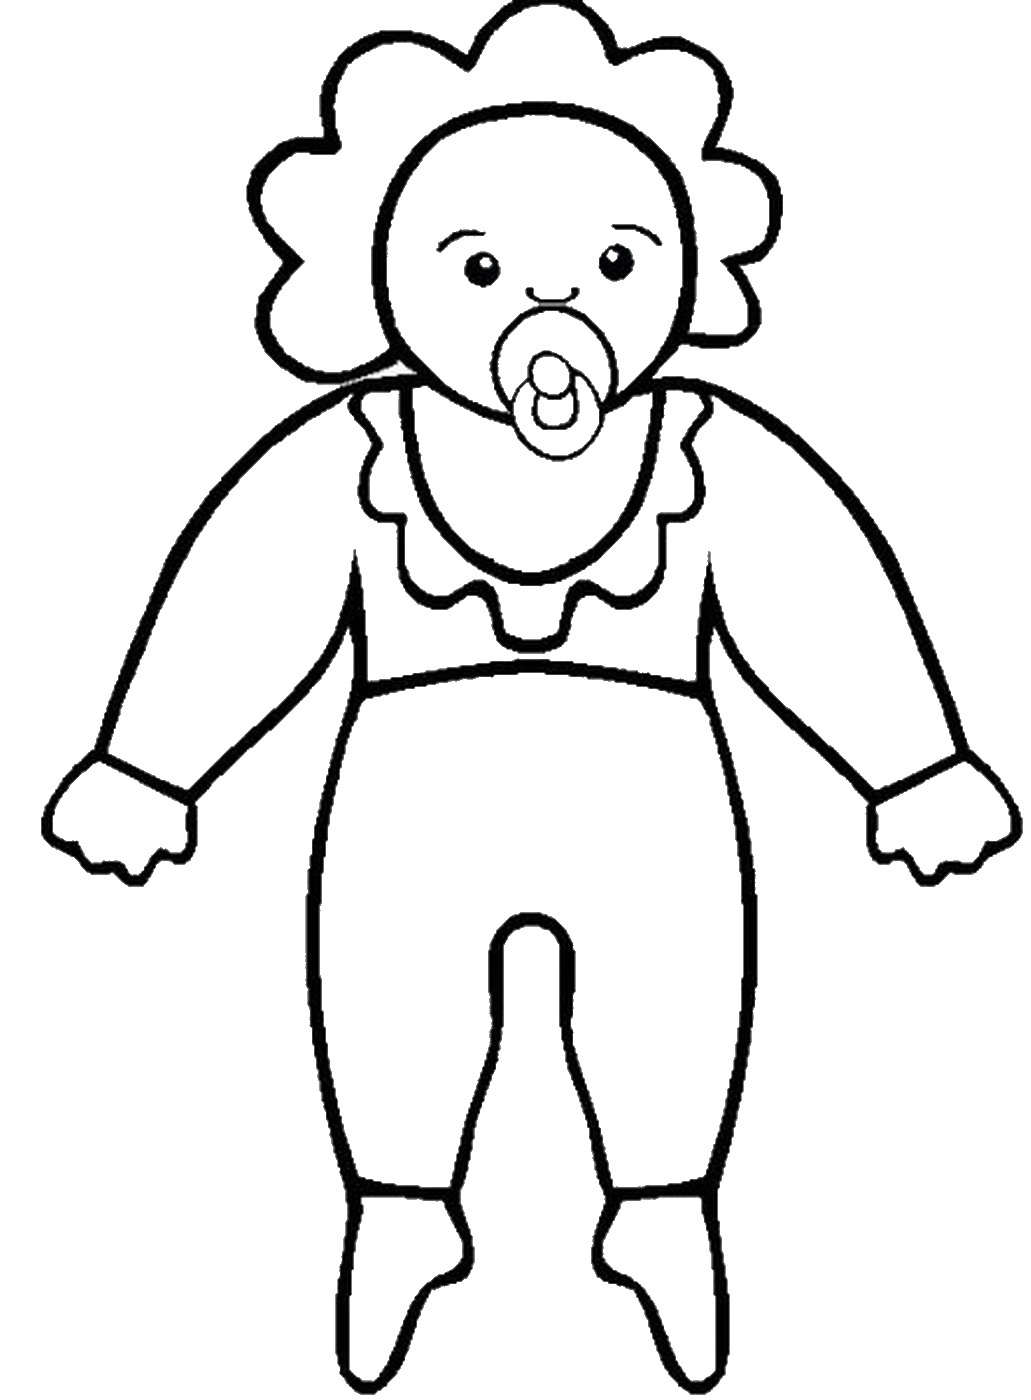 dolls colouring pages lol surprise dolls coloring pages print them for free colouring pages dolls